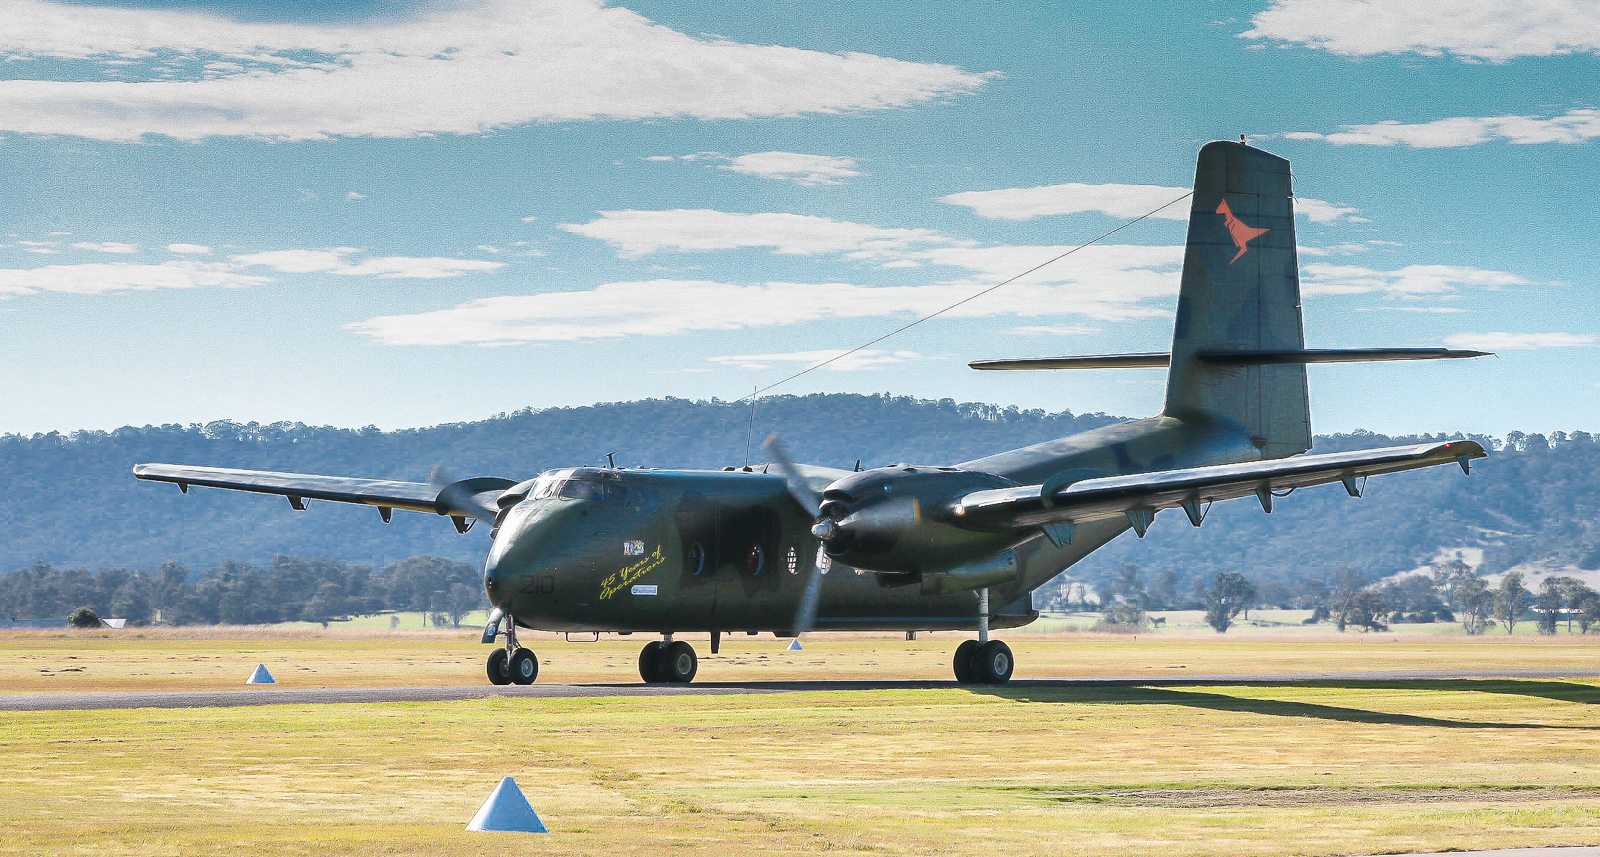 One of HARS two magnificently airworthy, Viet Nam veteran, former RAAF DHC-4 Caribous taxiing in after landing. (photo by Phil Buckley)